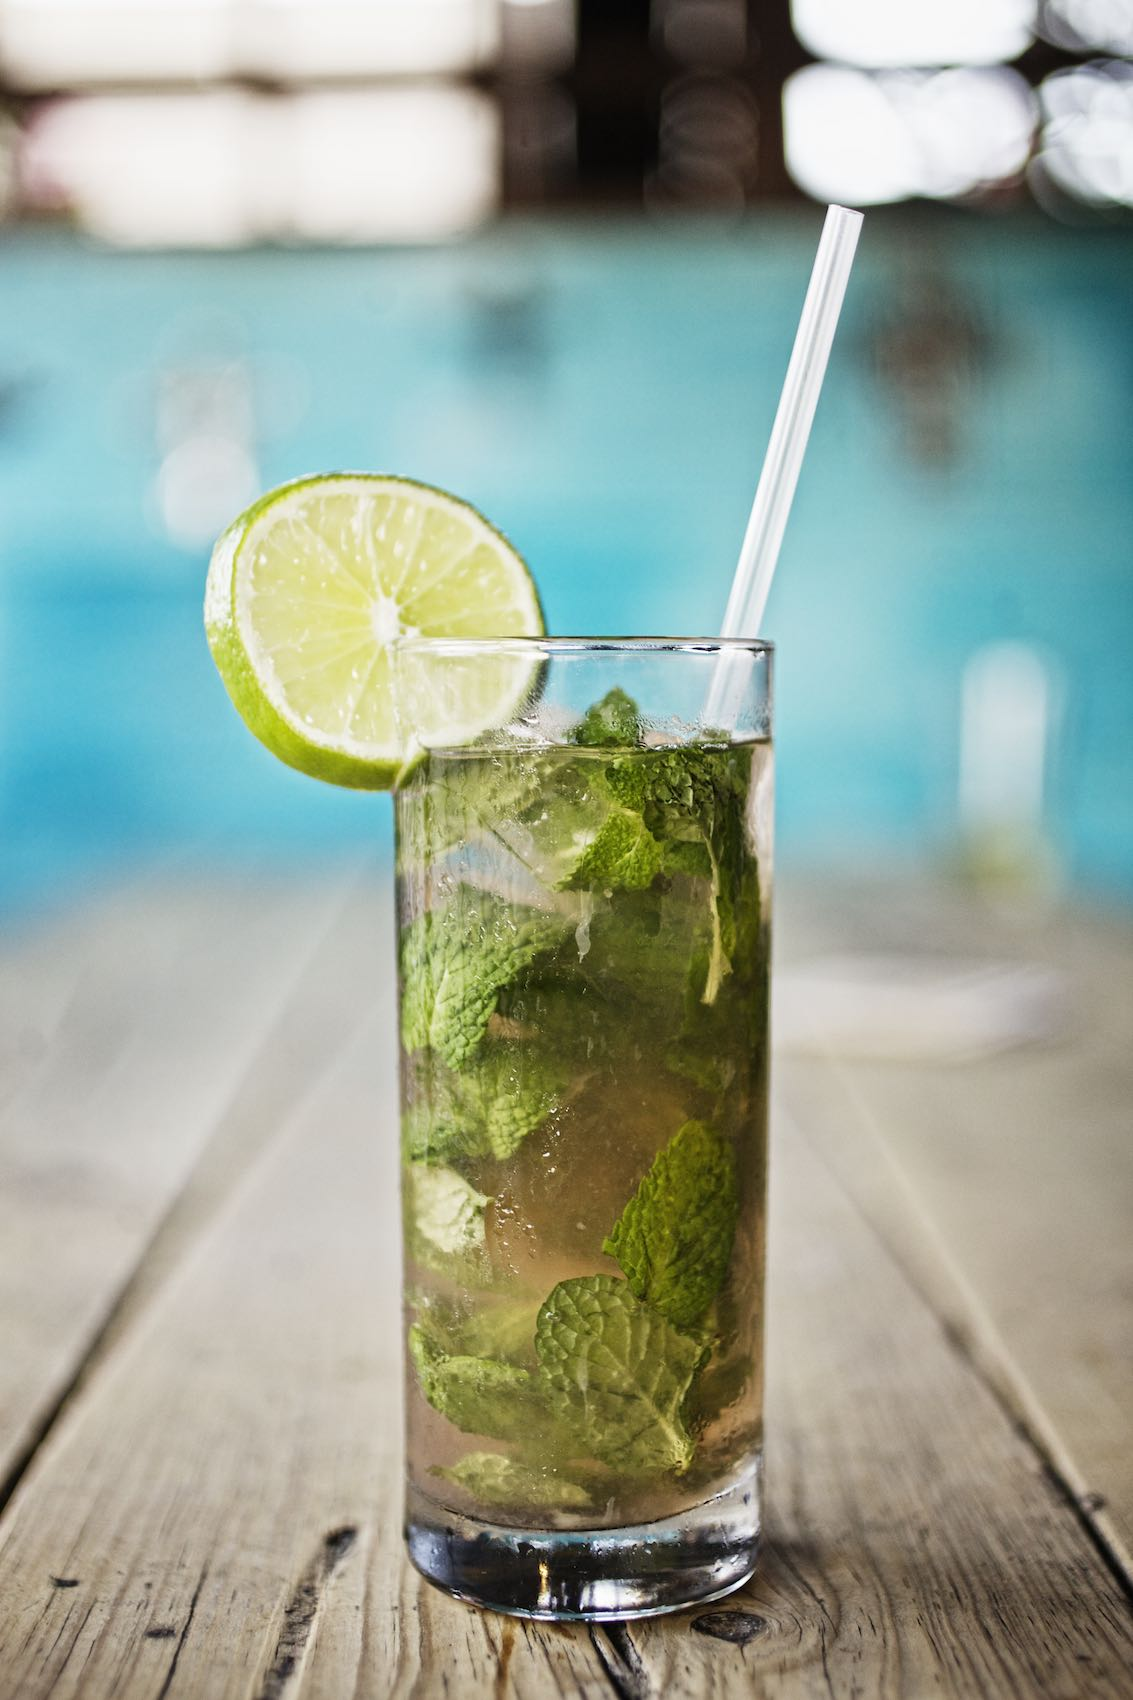 Jody Horton Photography - Mojito on a wood table.